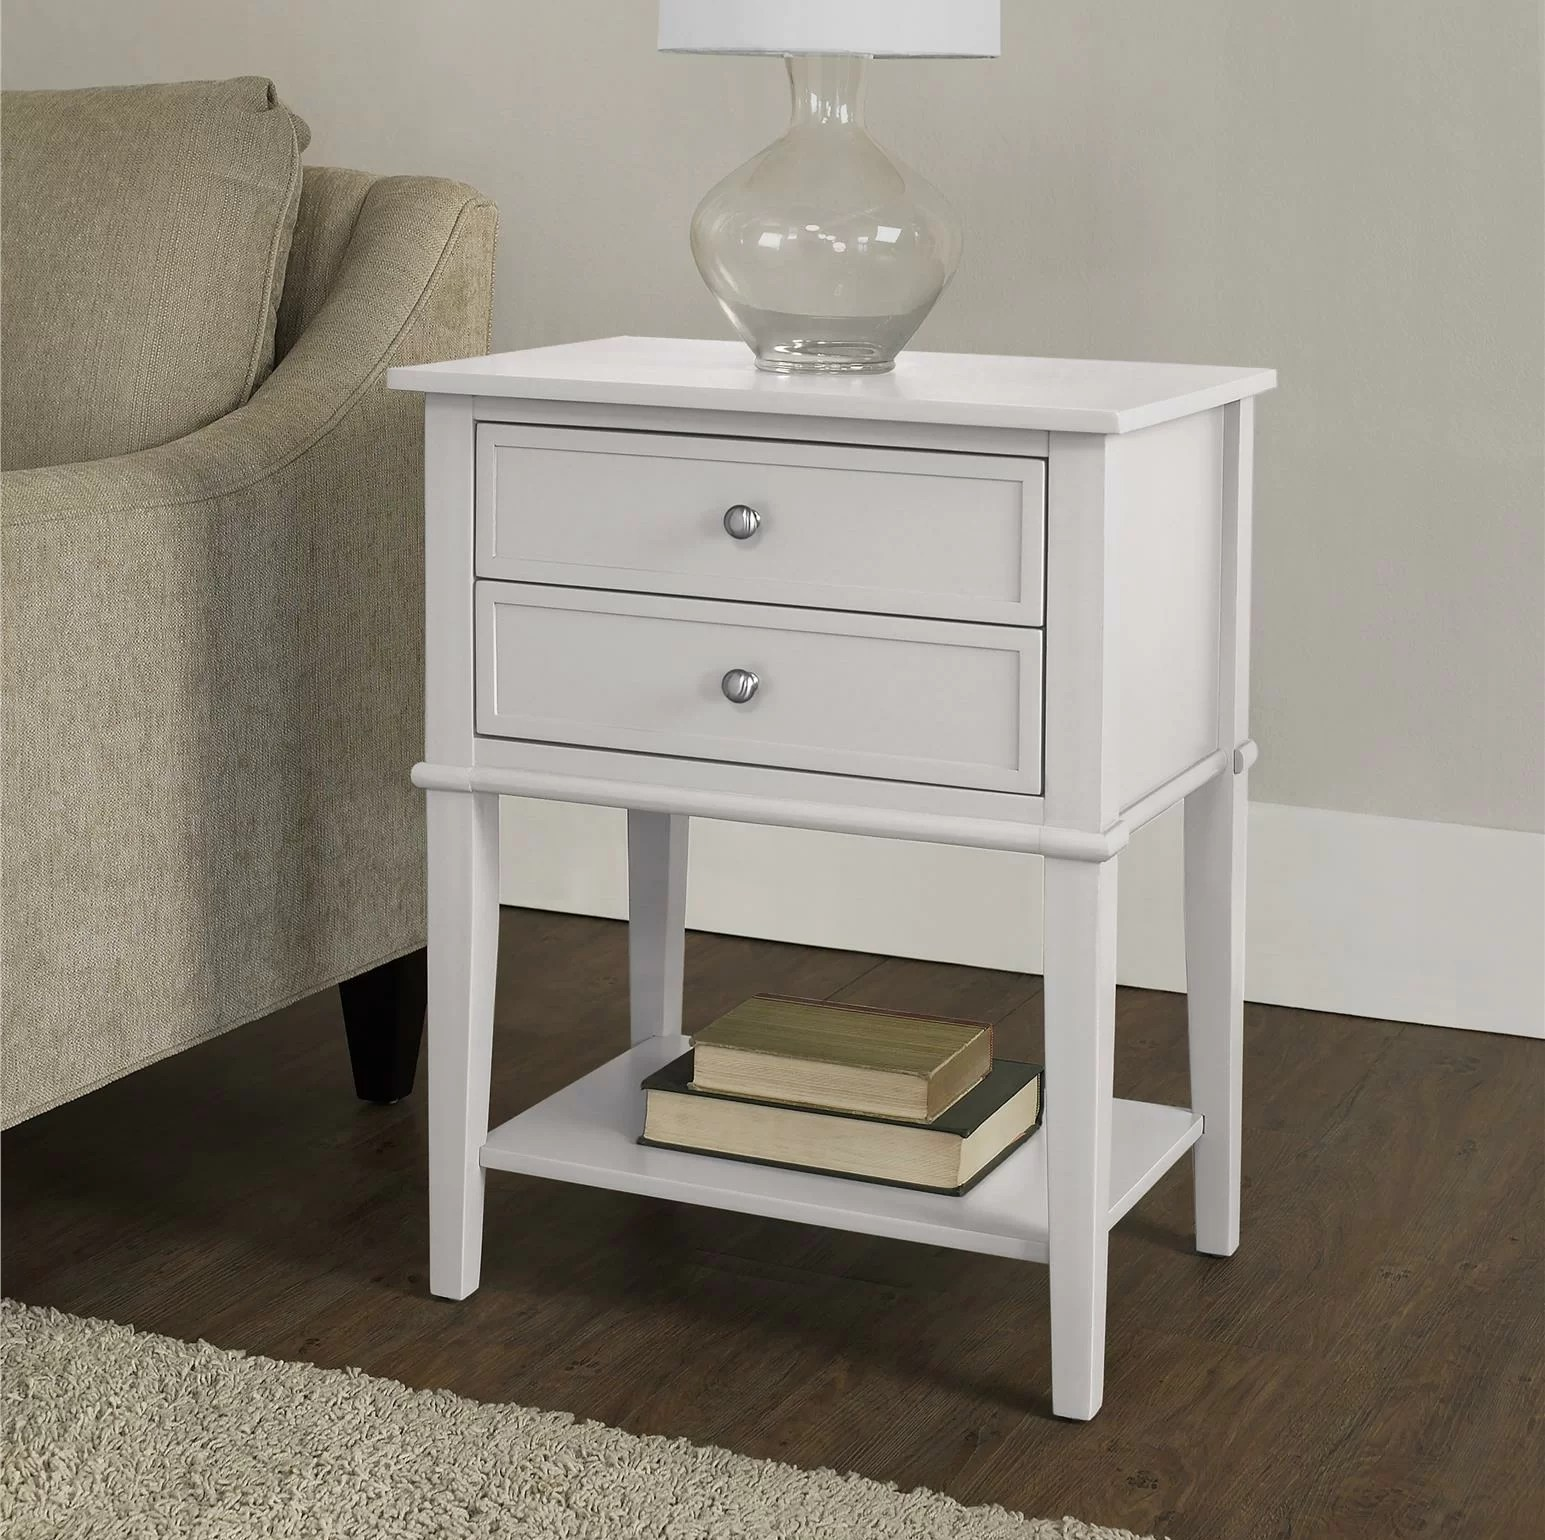 Unusual Accent Tables Beachcrest Home Winfield End Table With Storage And Reviews